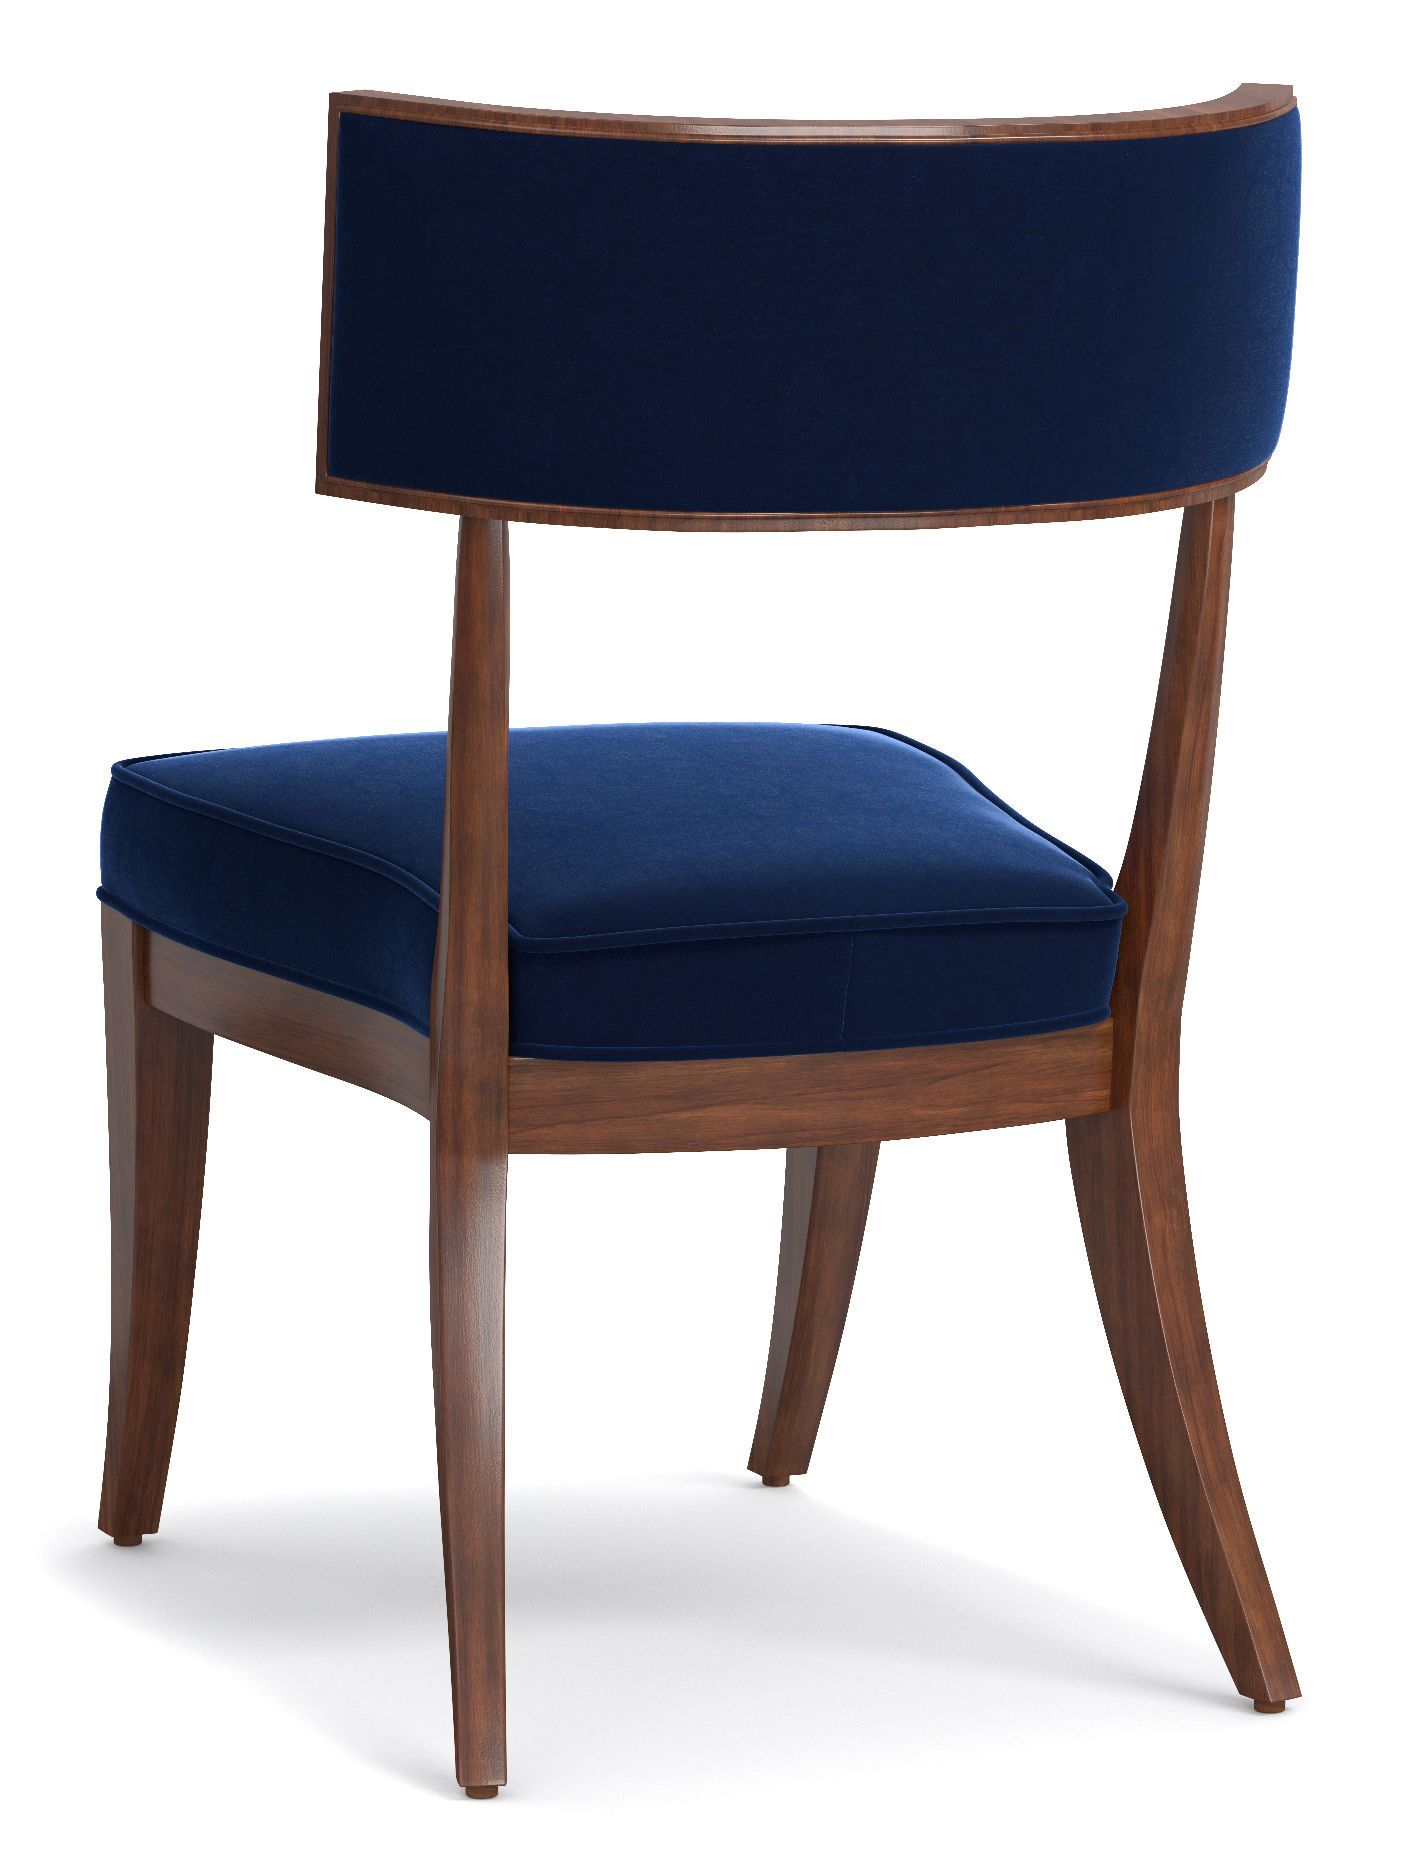 Cynthia Rowley For Hooker Furniture Dining Room Perch Upholstered Klismos Chair 051253